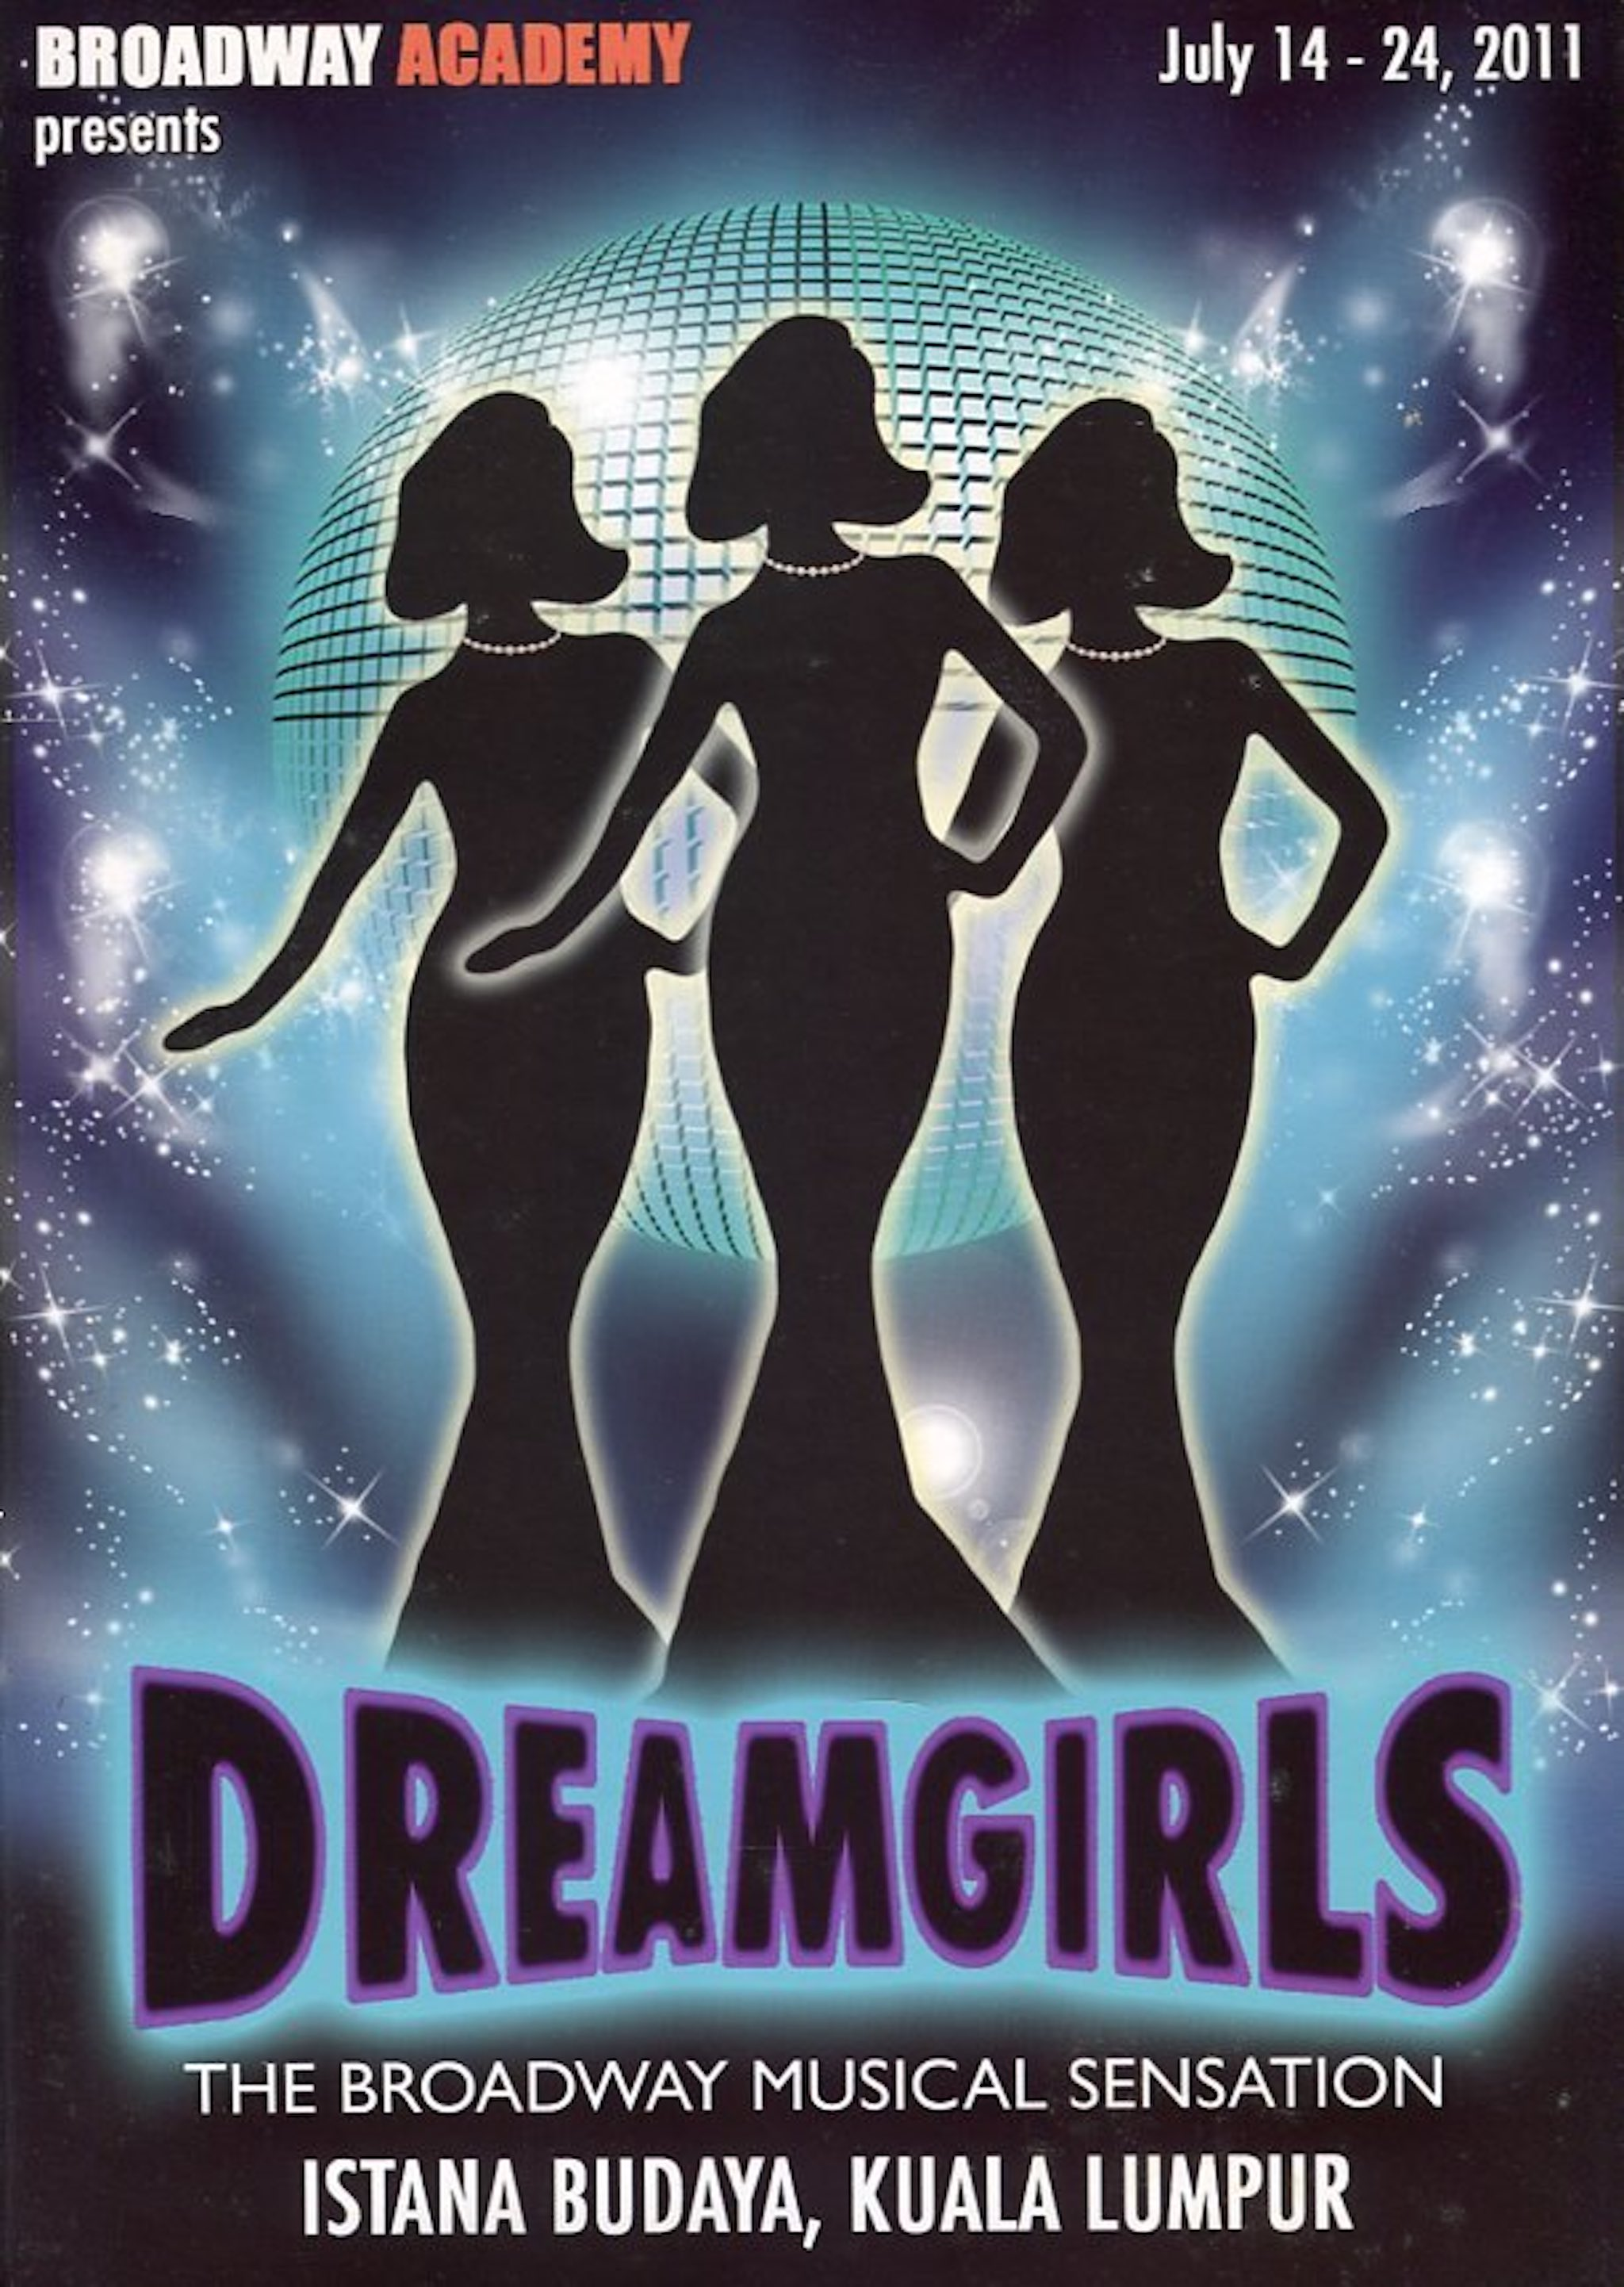 2011 Dreamgirls cover 1